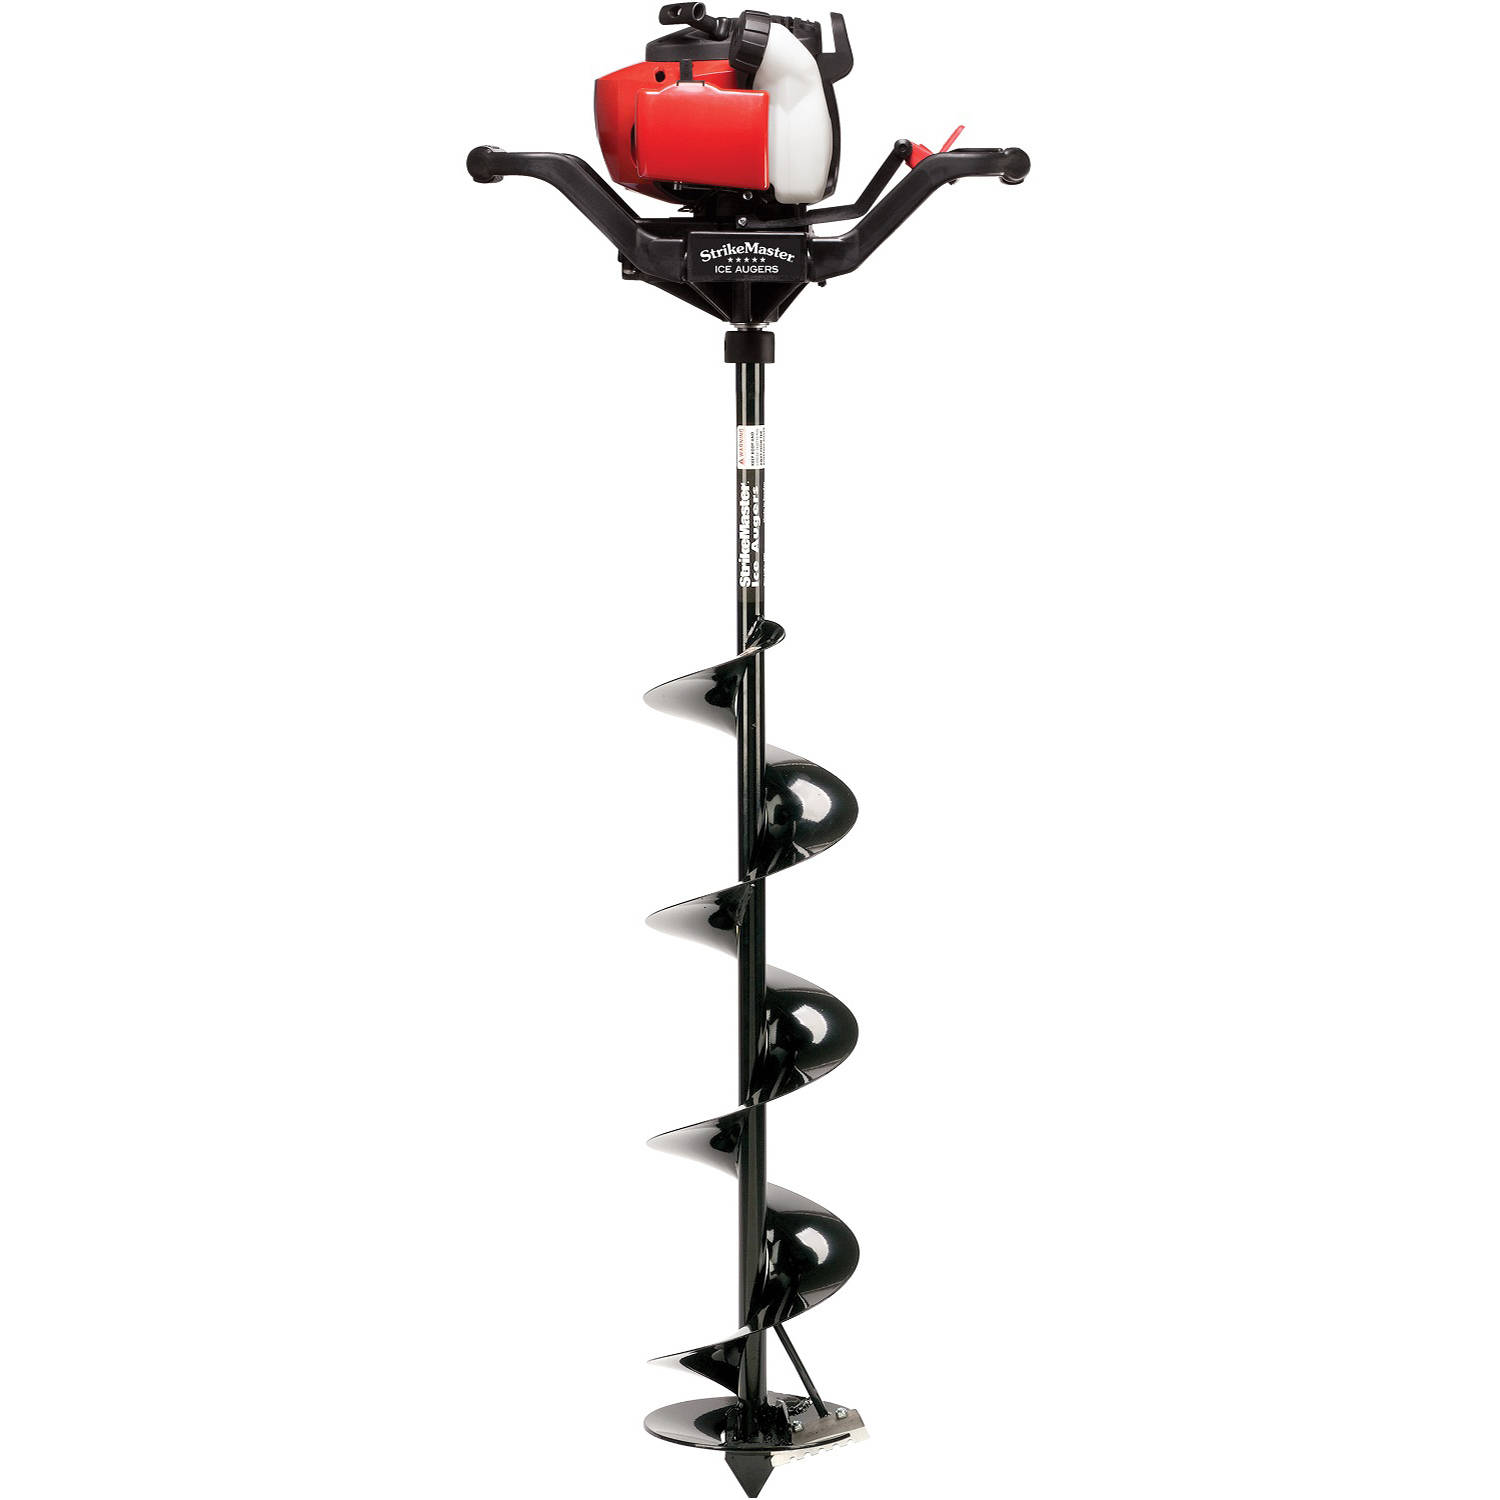 "StrikeMaster Lazer Lite 6"" Power Ice Auger by StrikeMaster"